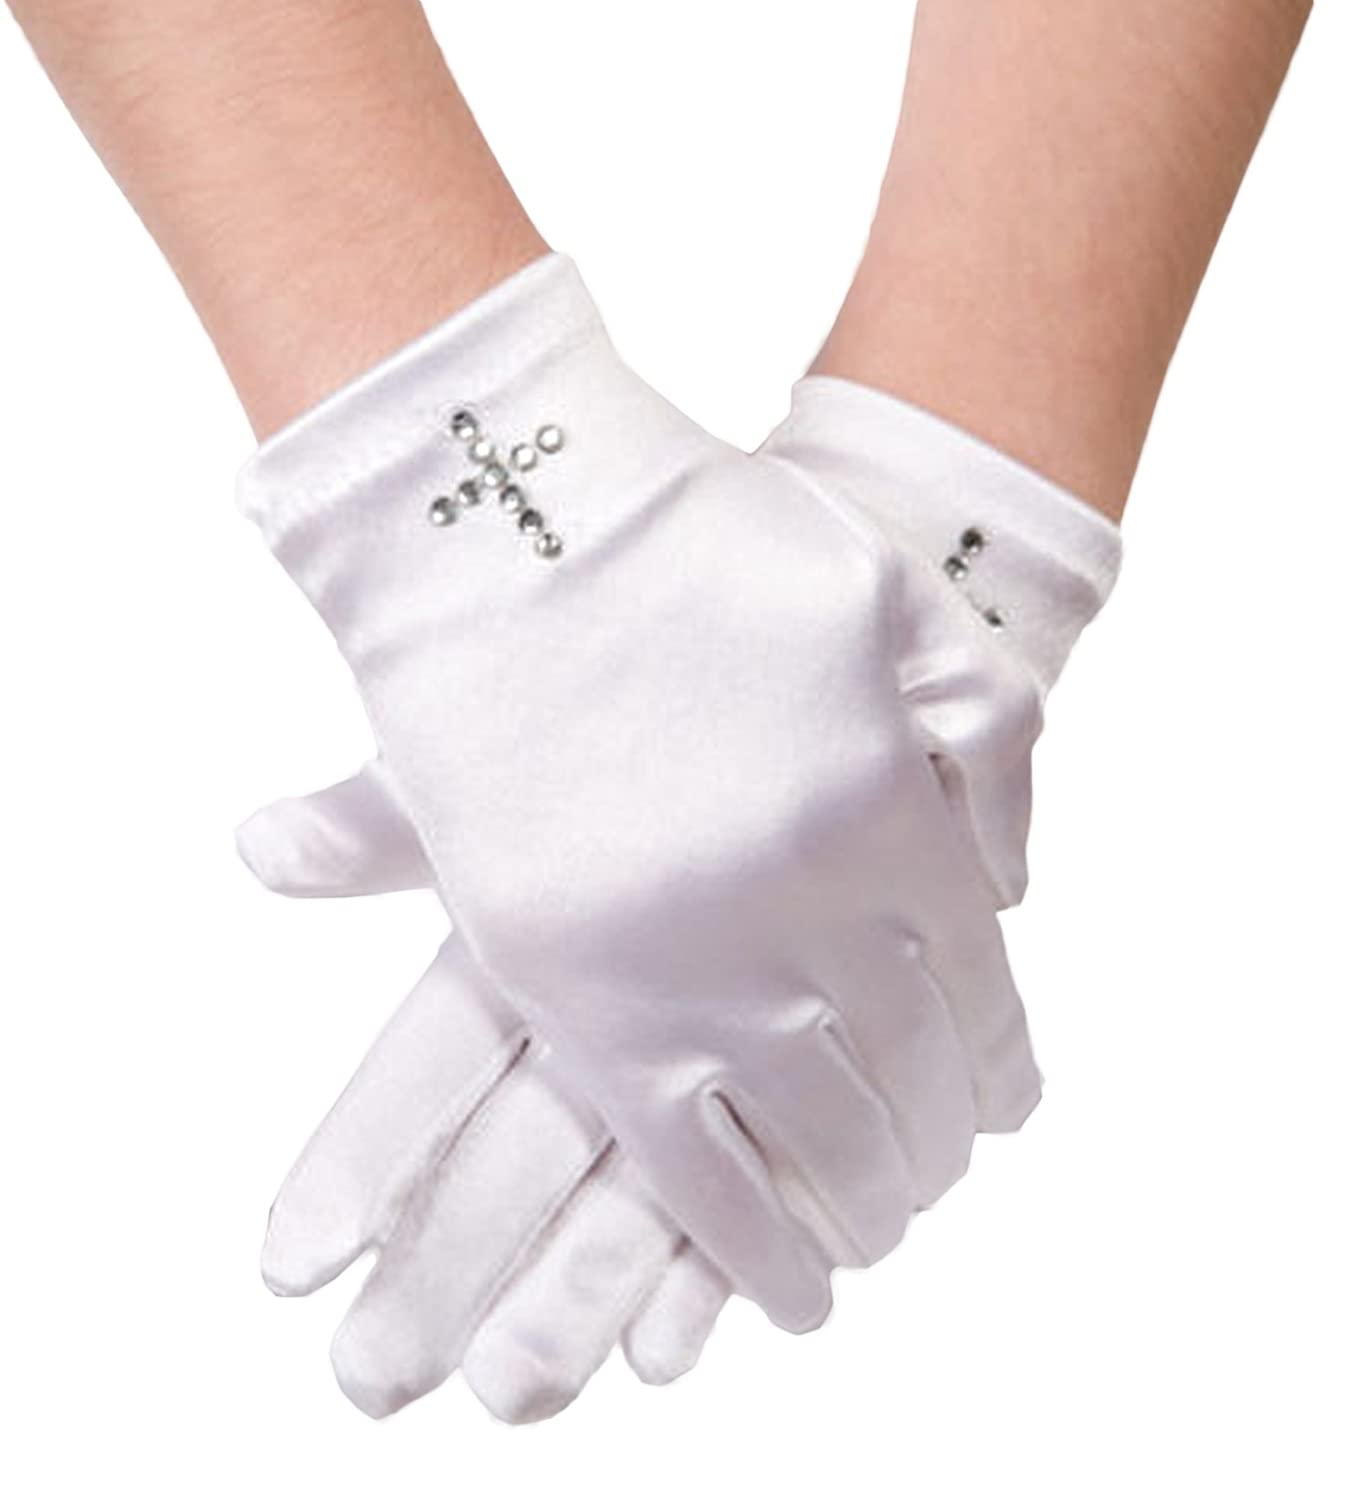 Flora Satin Girl's Short Fingered Communion Glove, Wrist Length with Diamante Cross cross veil